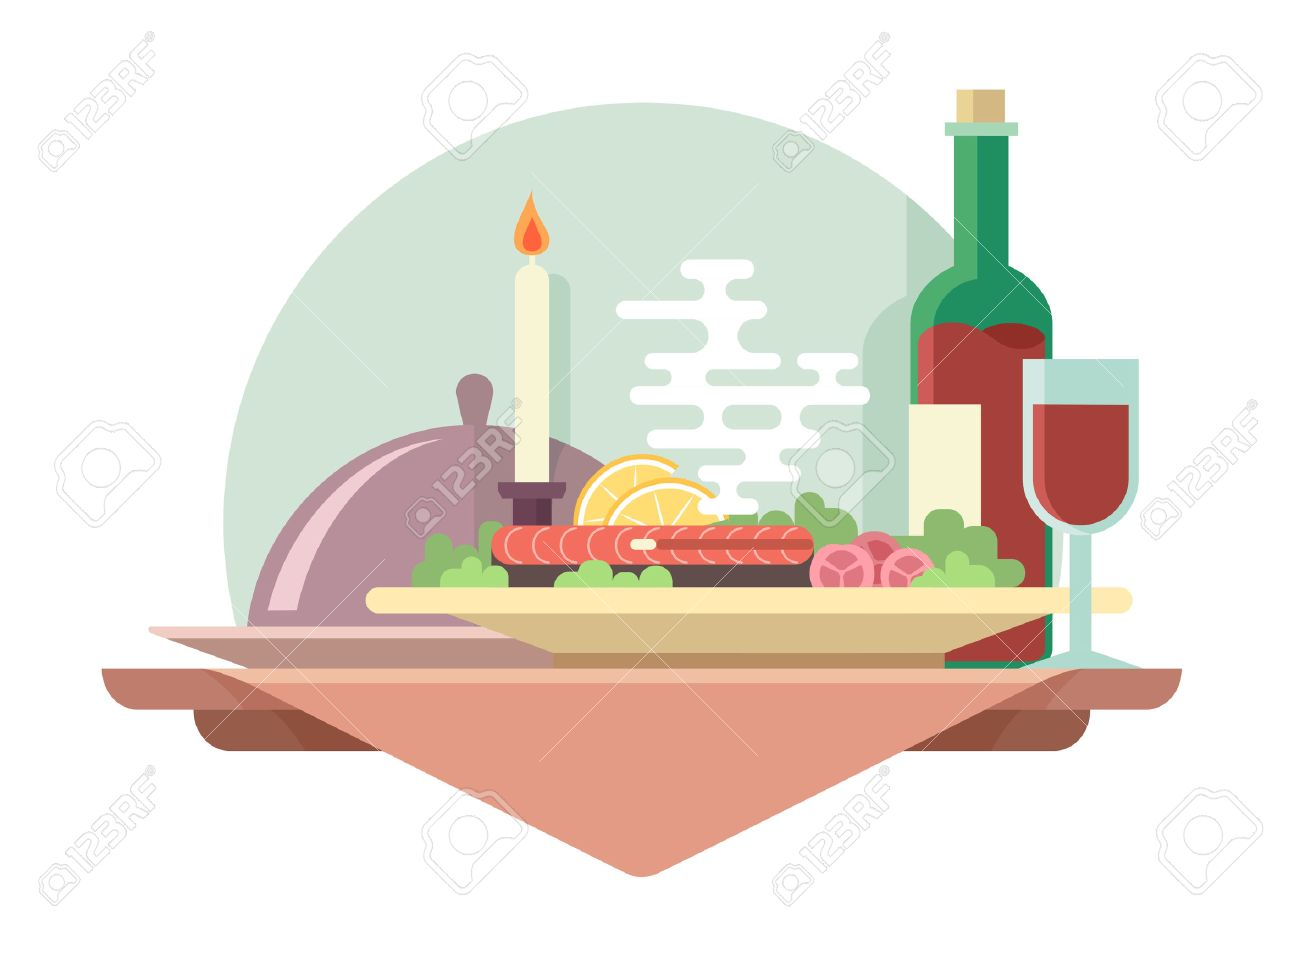 Dinner at restaurant flat illustration. Vector eat and drink, glass of wine - 42763001